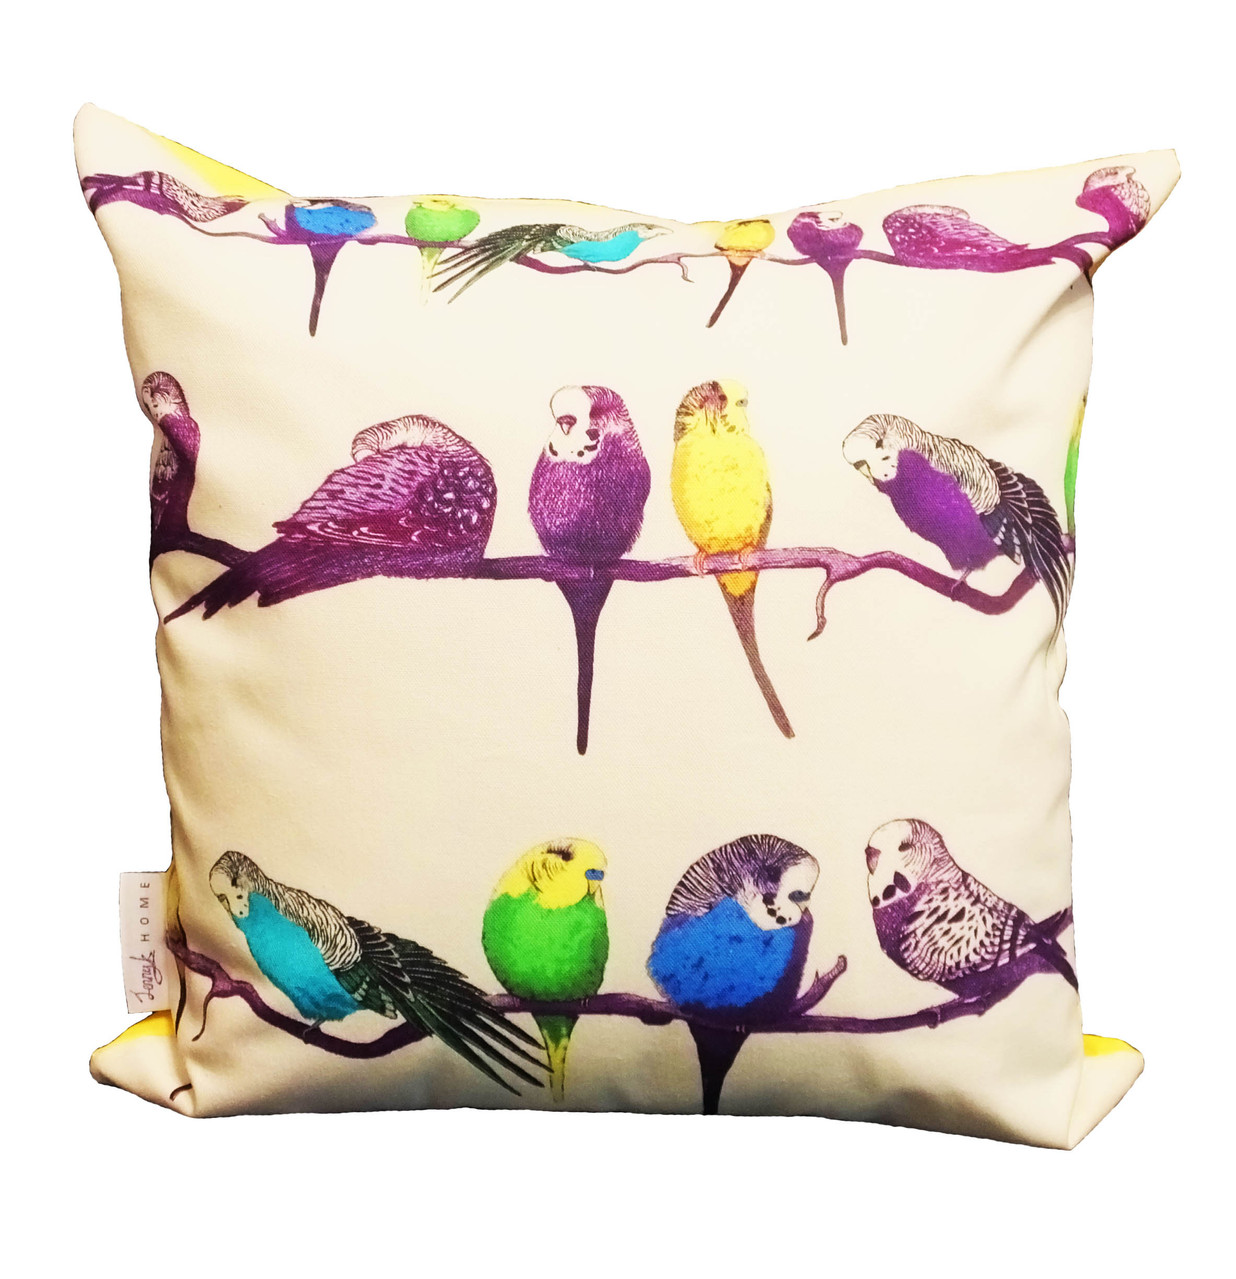 Happy Budgie Yellow Cushion Throw Pillow - Detail 1 square (1 of 1)